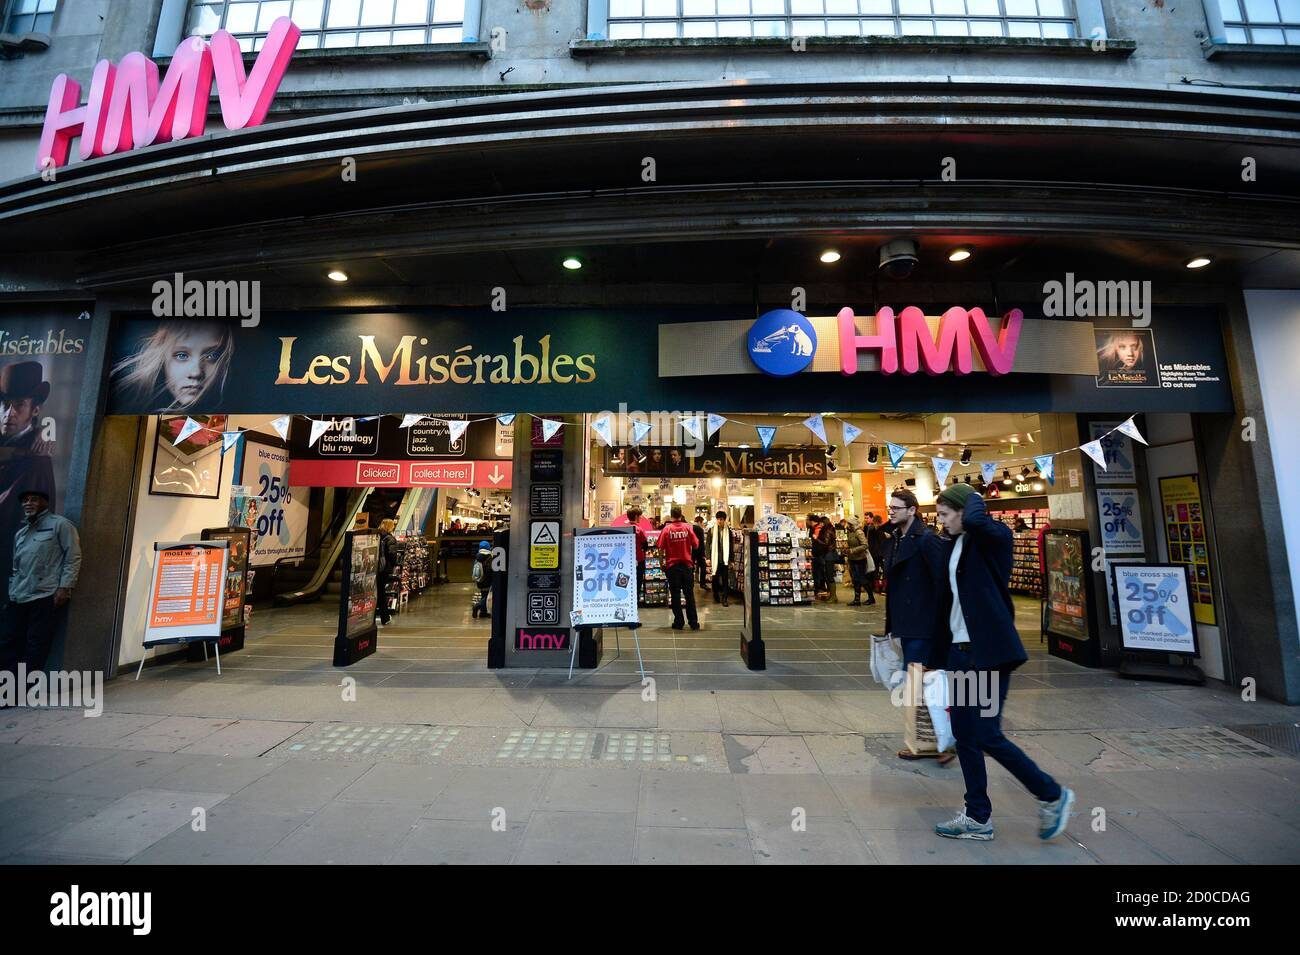 Shoppers pass an HMV shop in central London, January 15, 2013. HMV, the 92-year-old British music retailer seeking protection from creditors, is unlikely to have much of a future beyond a rump of stores and the internet, if other recent retail failures are any guide.   REUTERS/Paul Hackett (BRITAIN - Tags: BUSINESS ENTERTAINMENT) Stock Photo